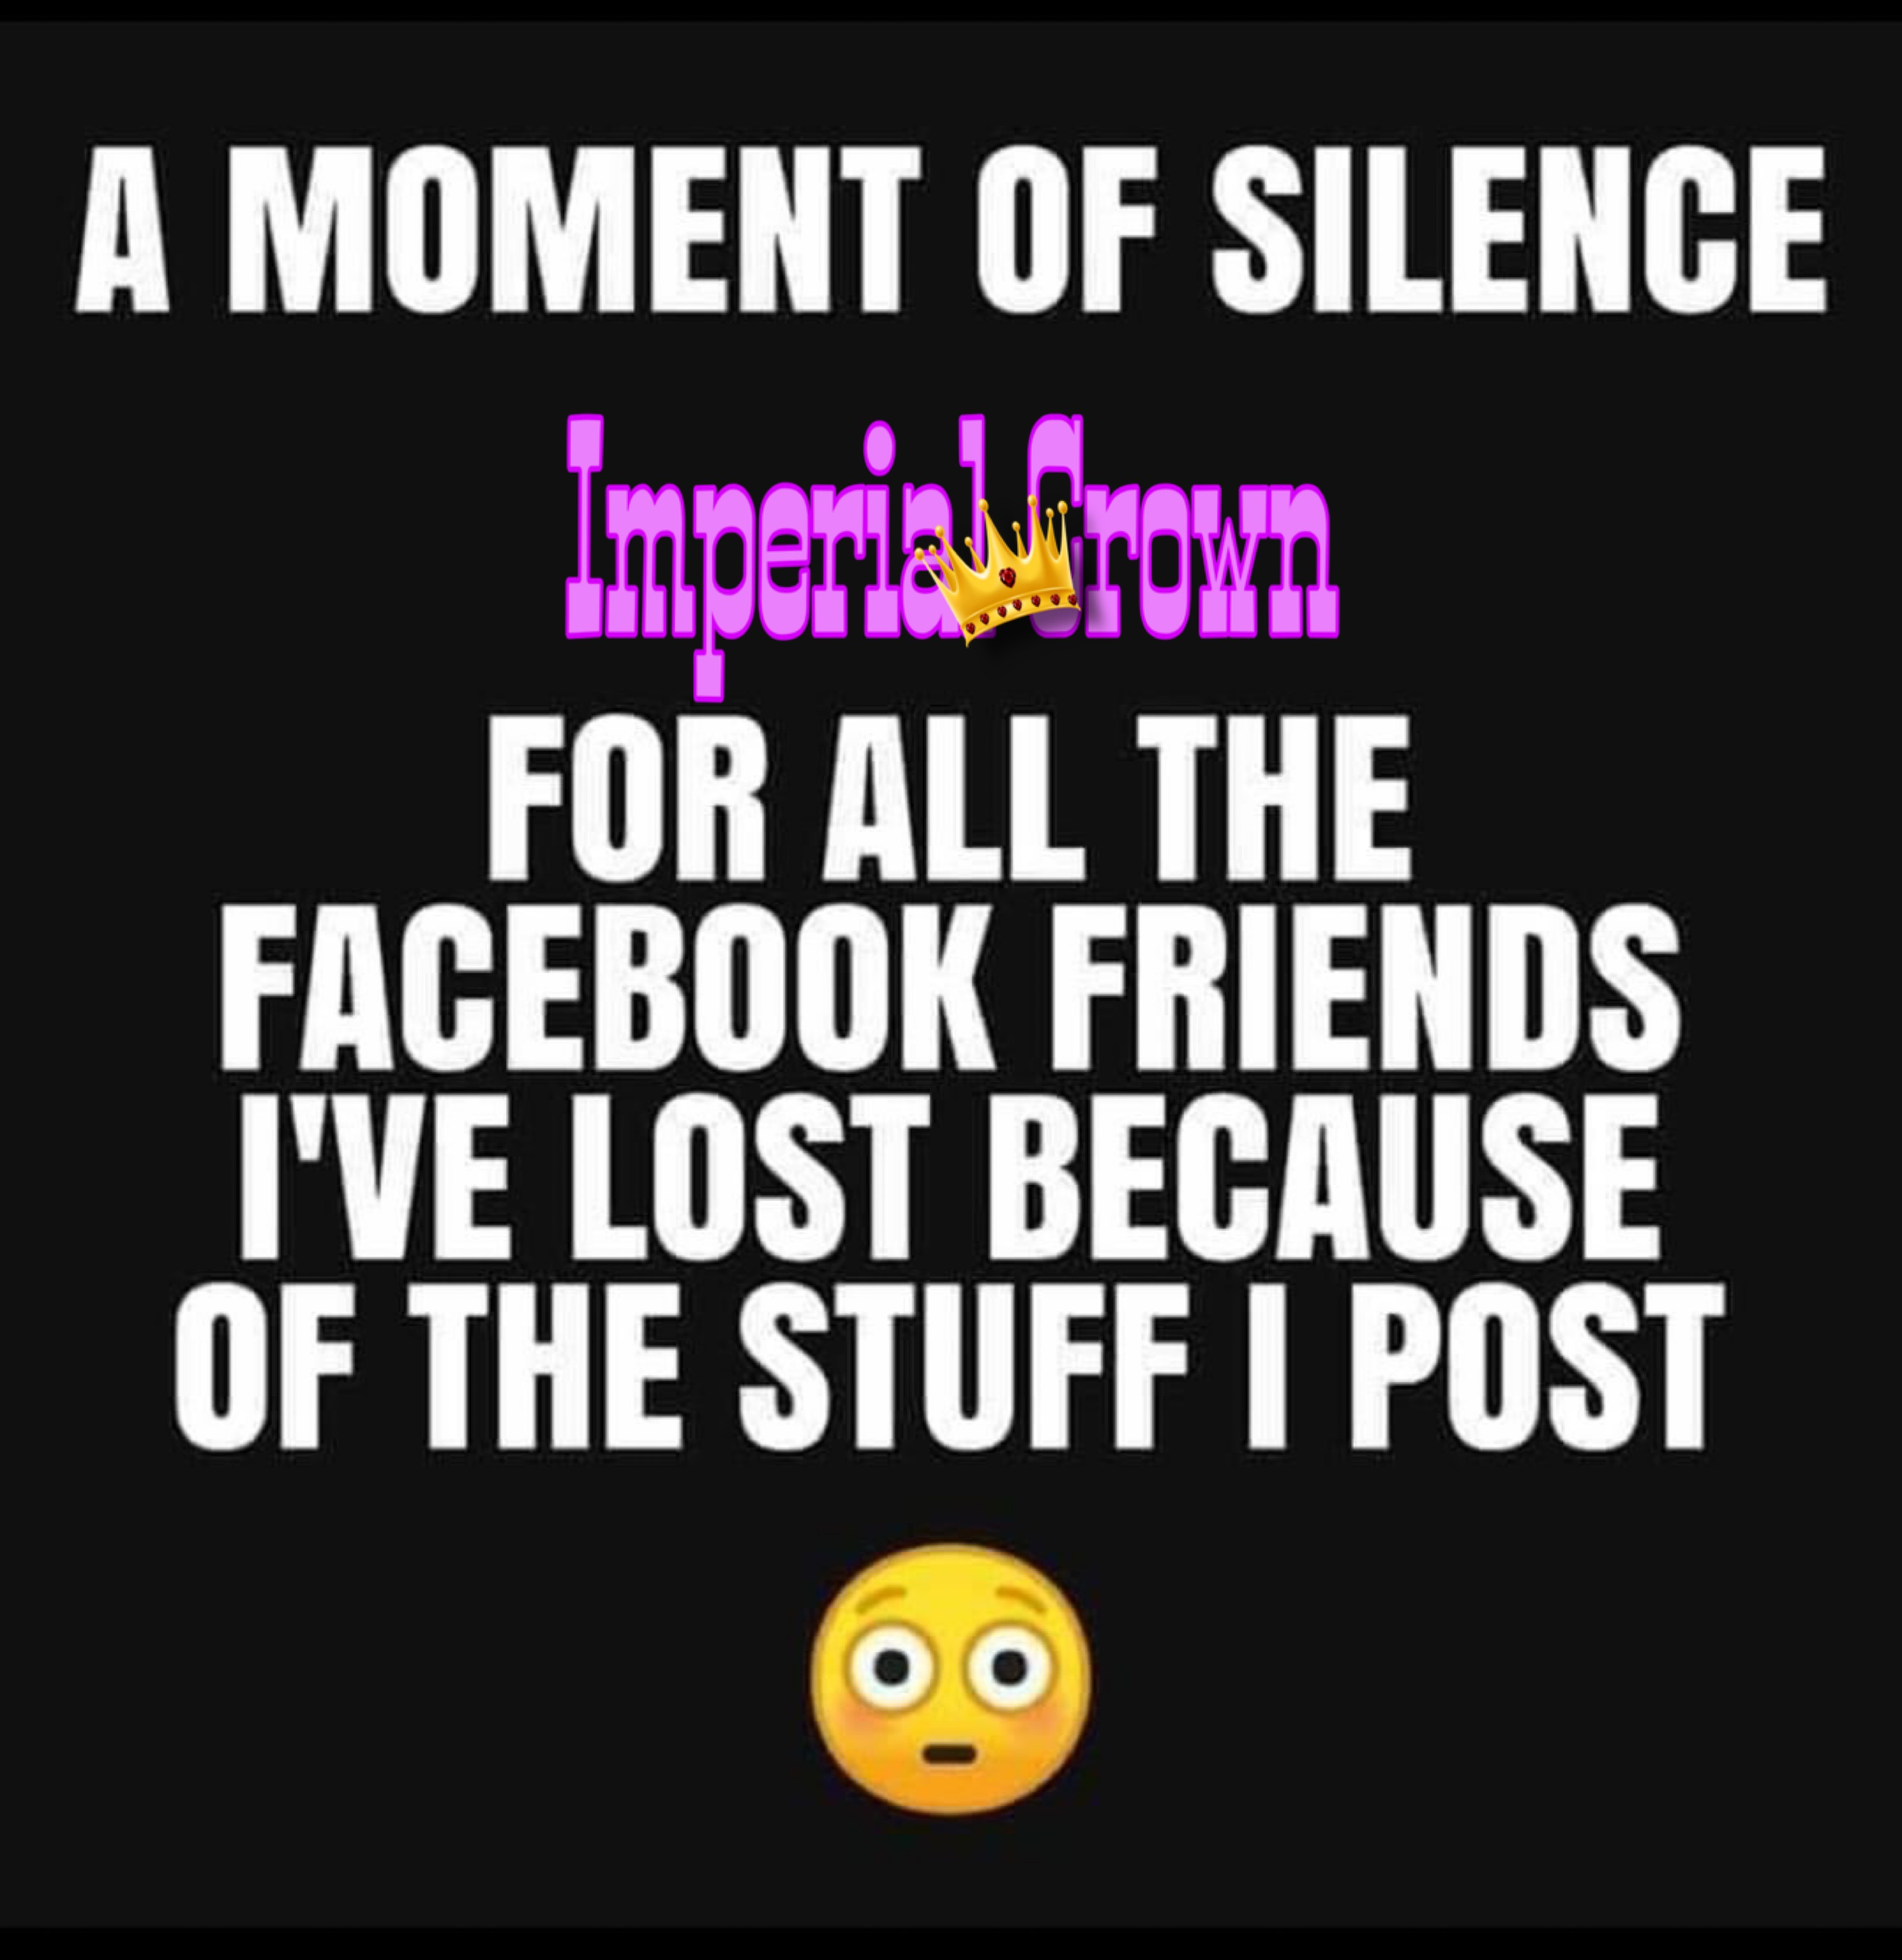 A moment of silence for all the Facebook friends I've lost because of the stuff I post